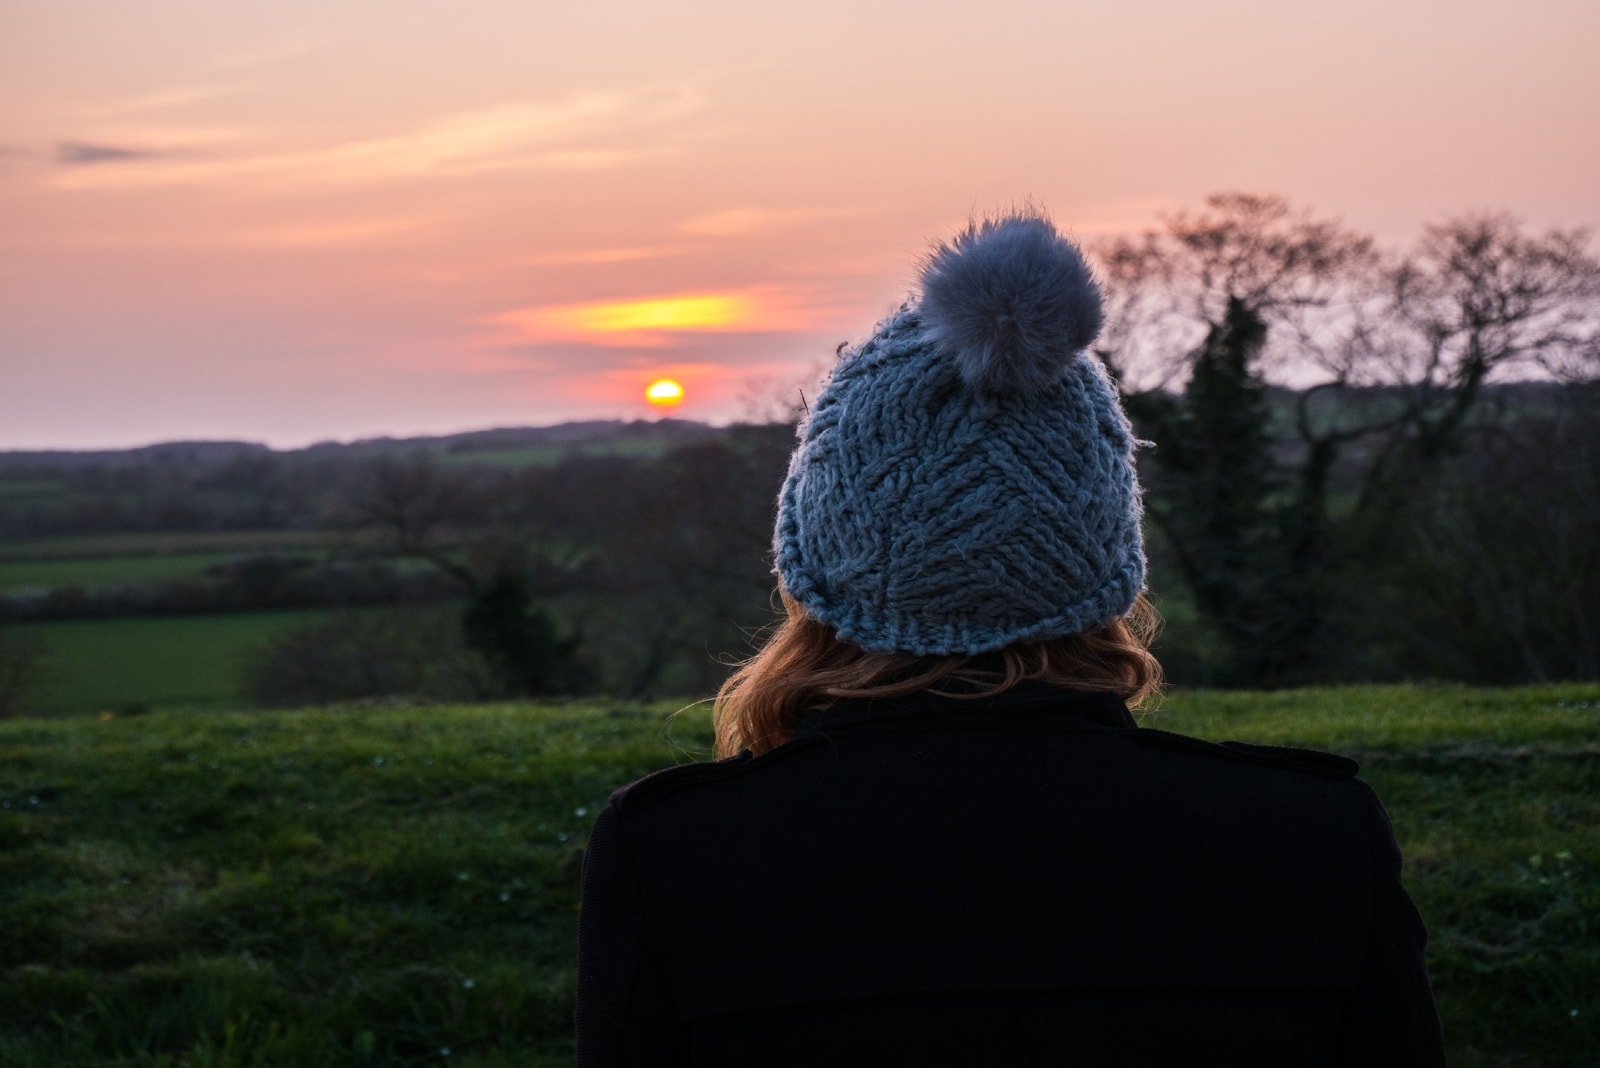 woman in blue knit cap looking at sunset